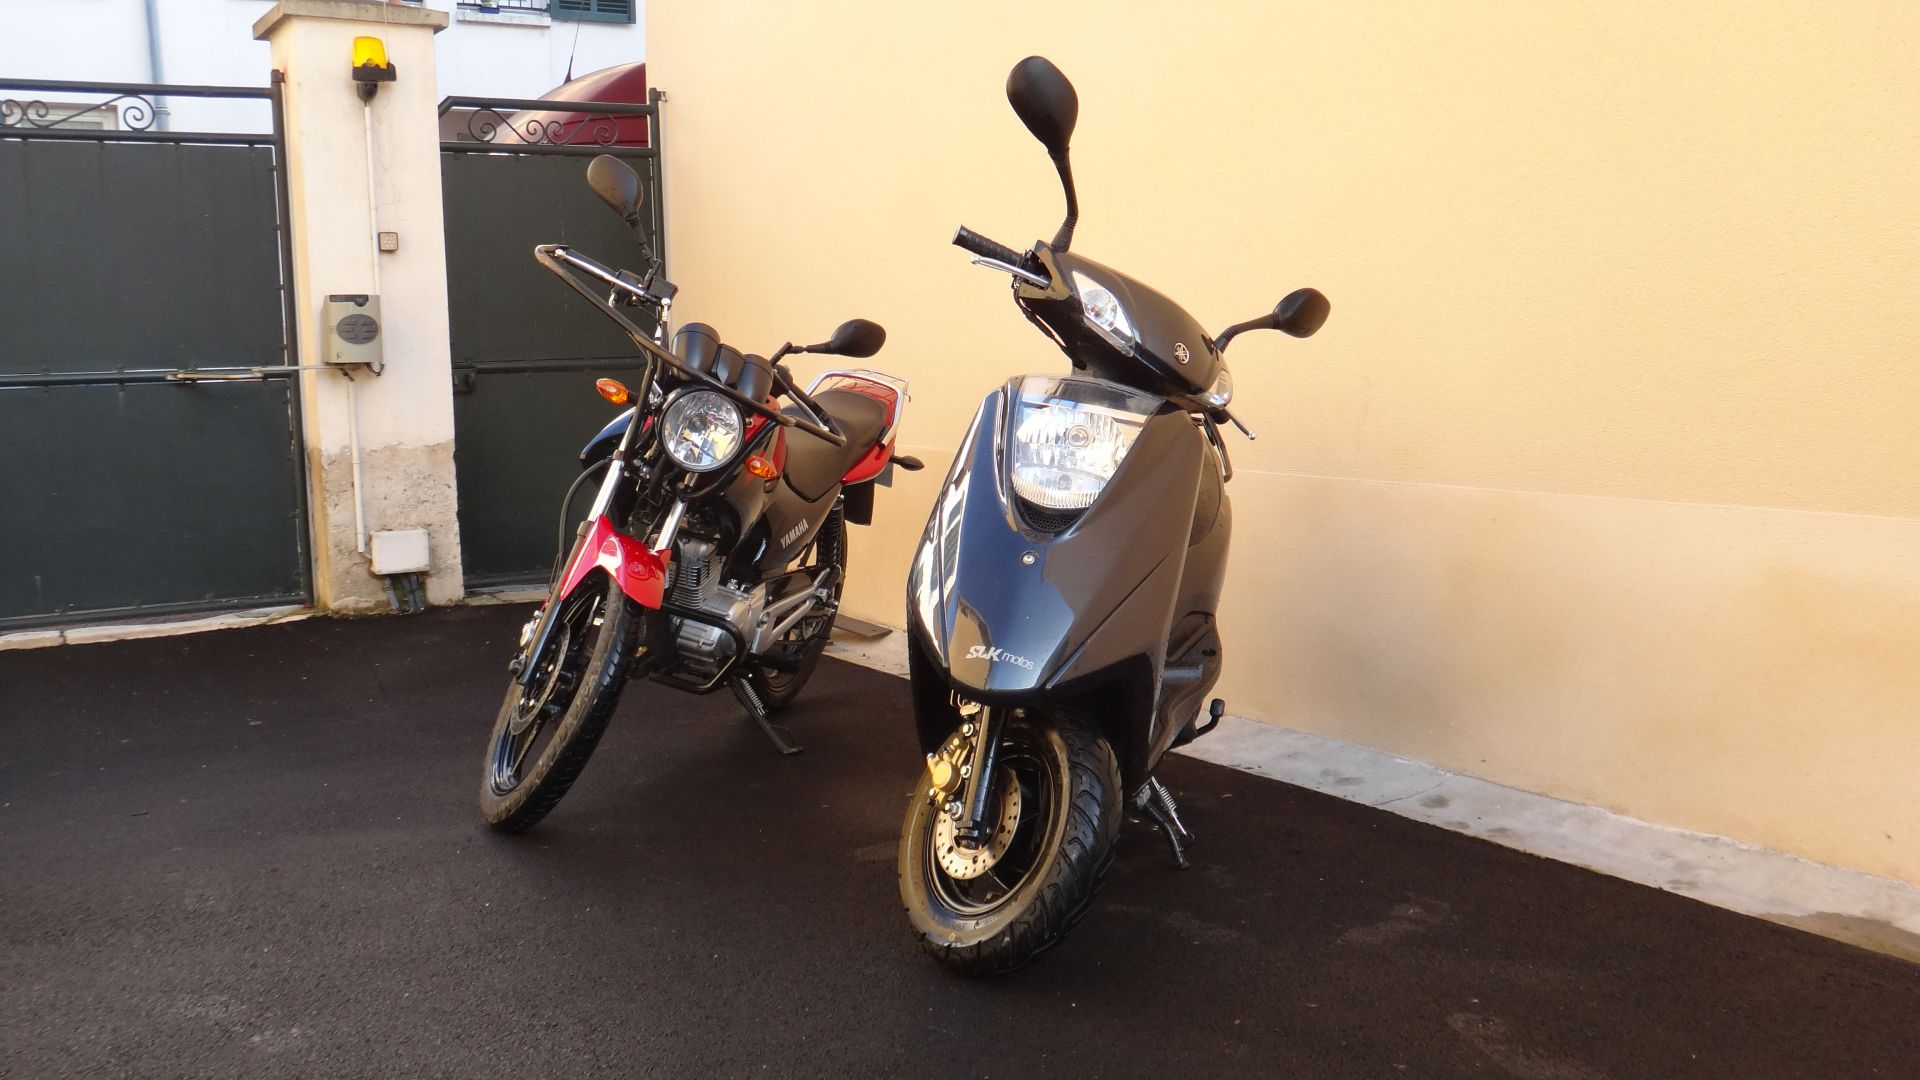 3 Yamaha 125 Permis A1 (YS + Scooter)